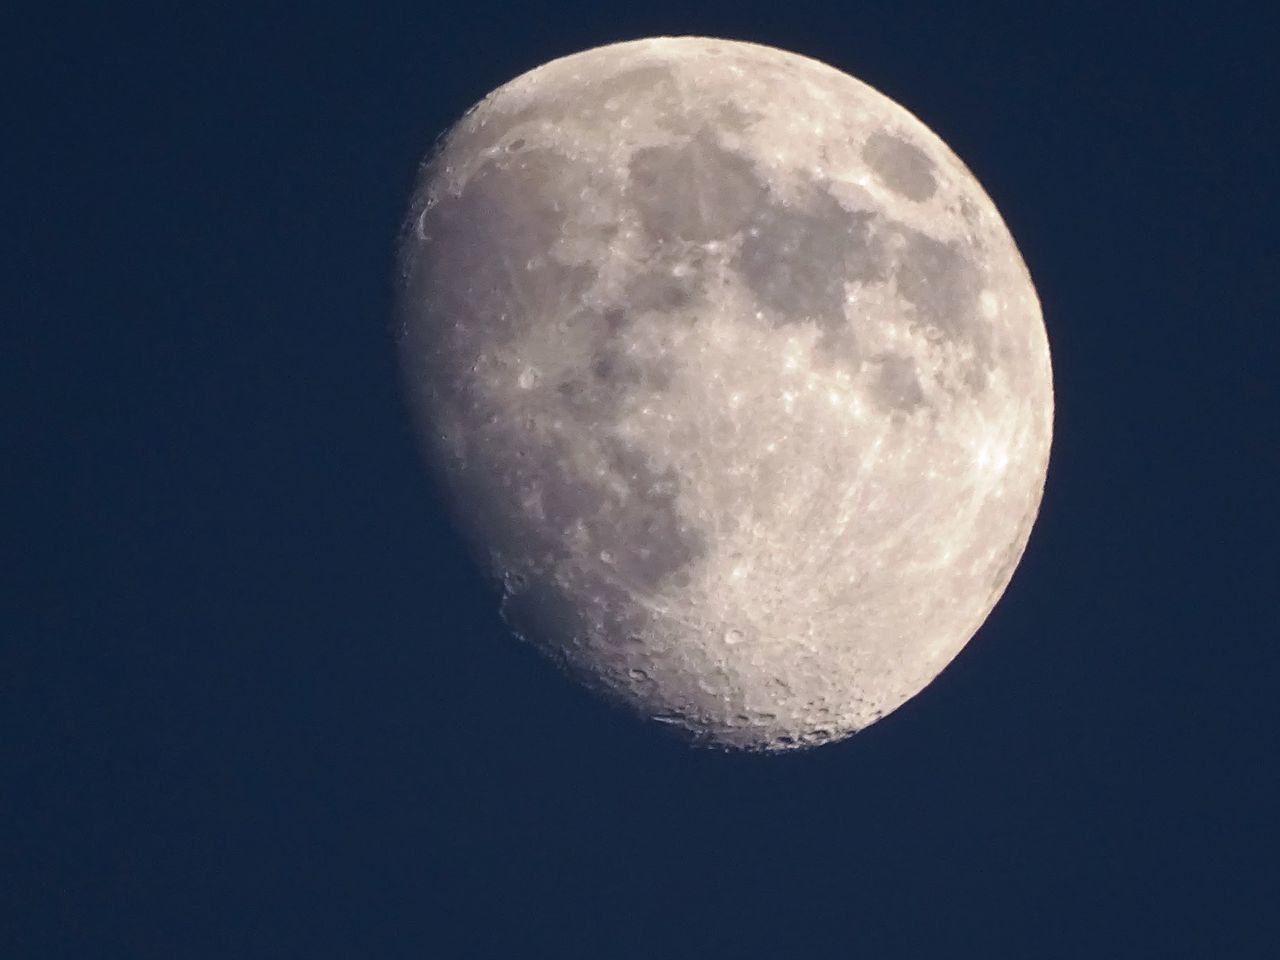 moon, night, astronomy, moon surface, planetary moon, beauty in nature, nature, clear sky, scenics, tranquility, low angle view, sky, tranquil scene, space exploration, half moon, outdoors, no people, sky only, space, close-up, satellite view